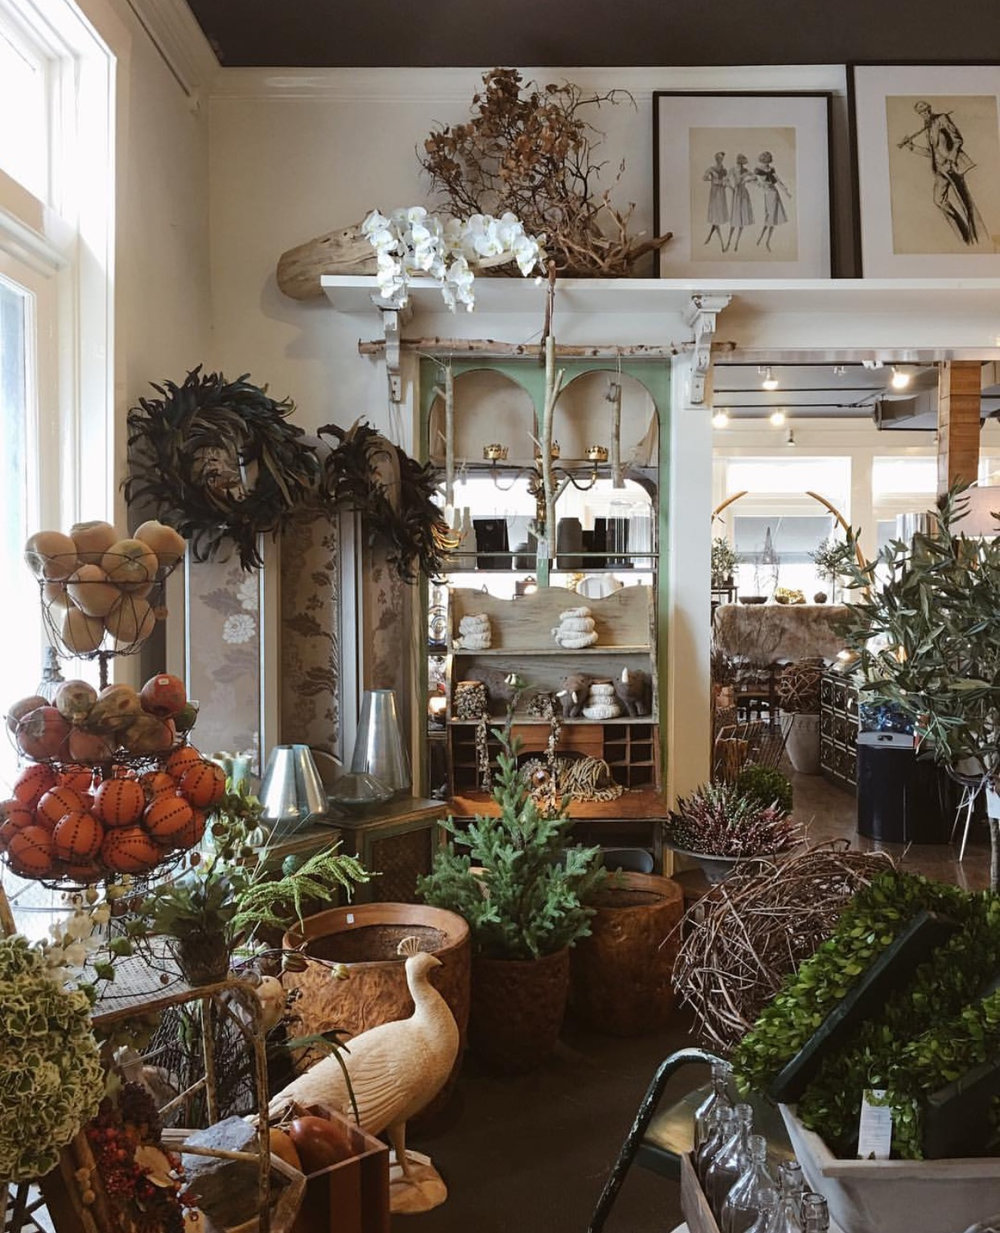 Arena's   is a the perfect spot to get your home decor, plant and floral shopping done all in one.